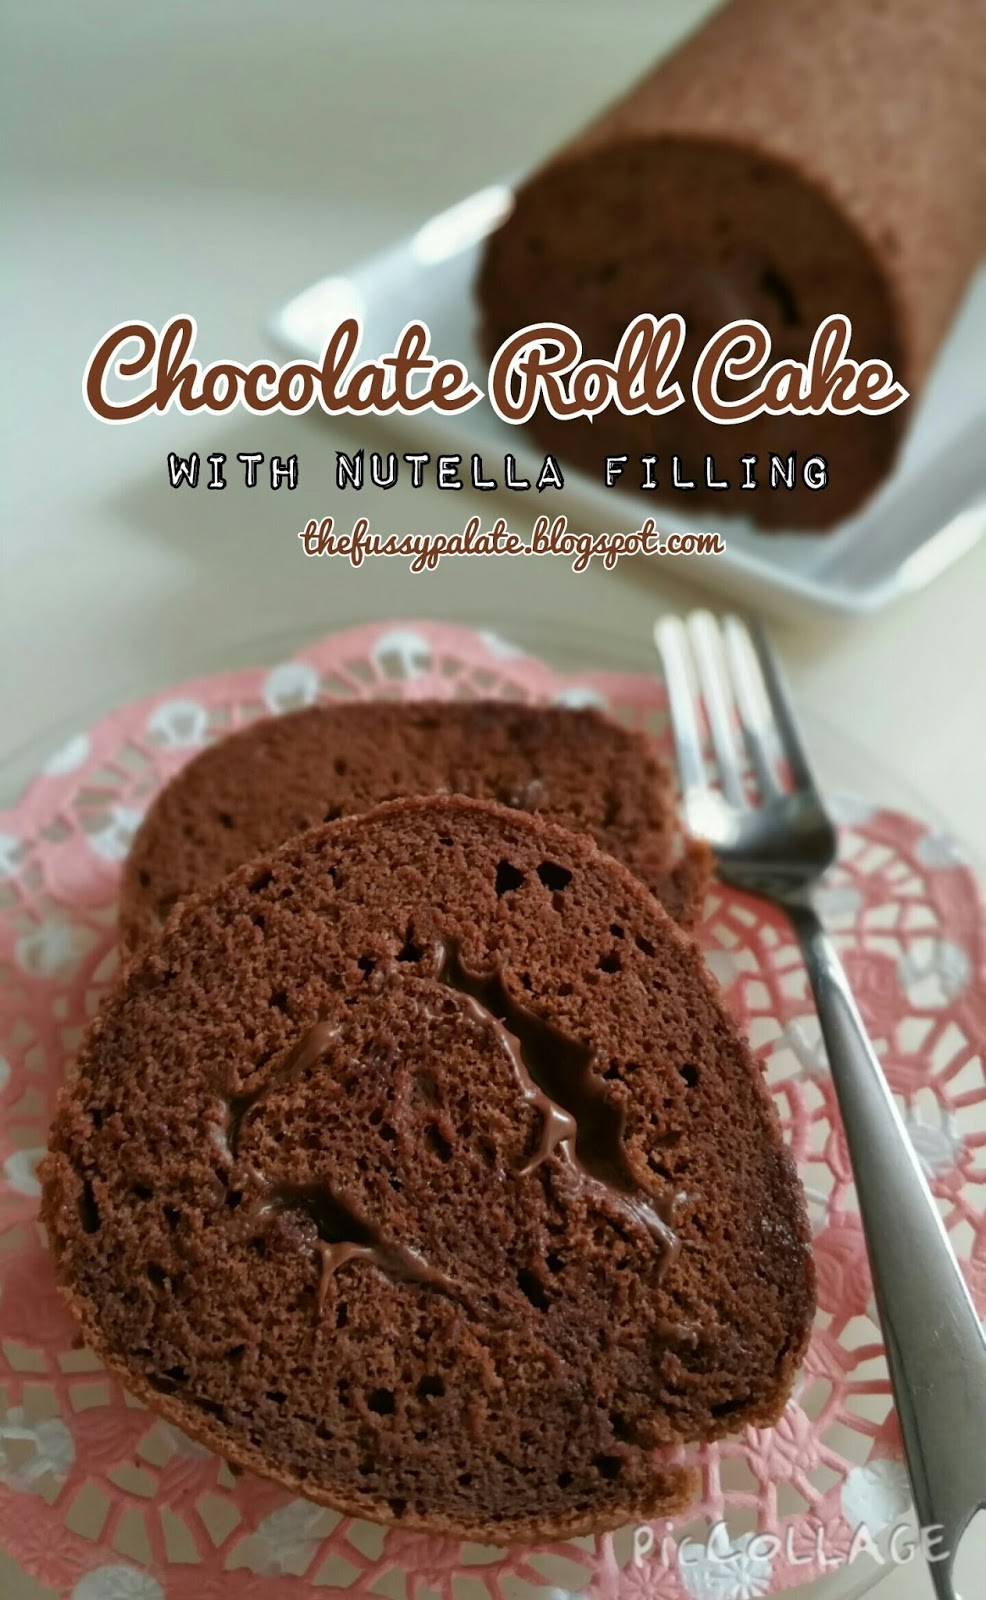 The Fussy Palate: Chocolate Roll Cake with Nutella filling